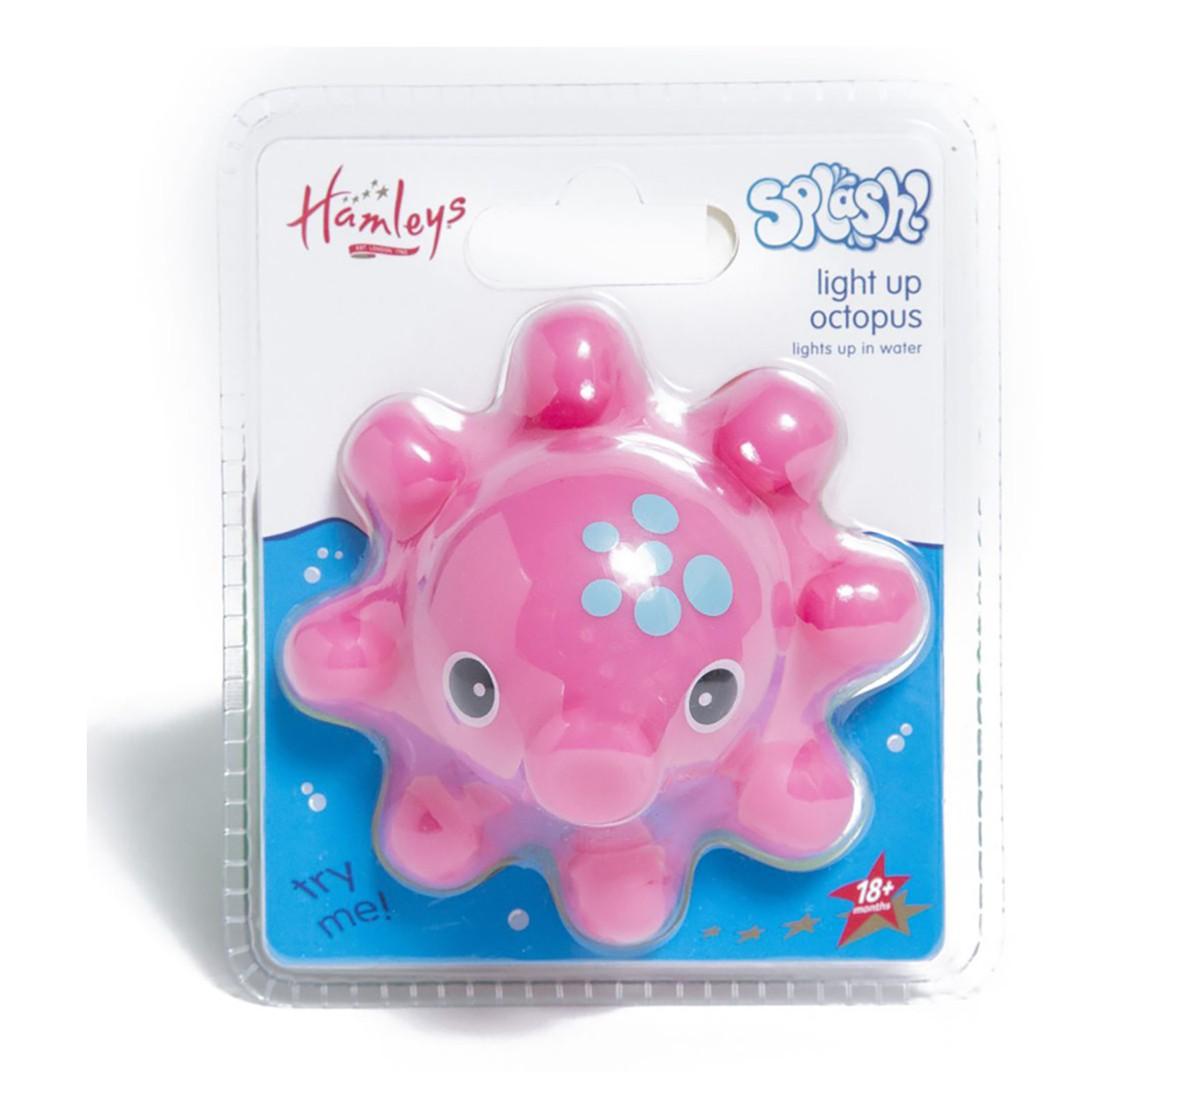 Hamleys Floating Light Up Octopus - Pink Bath Toys & Accessories for Kids age 2Y+ (Pink)